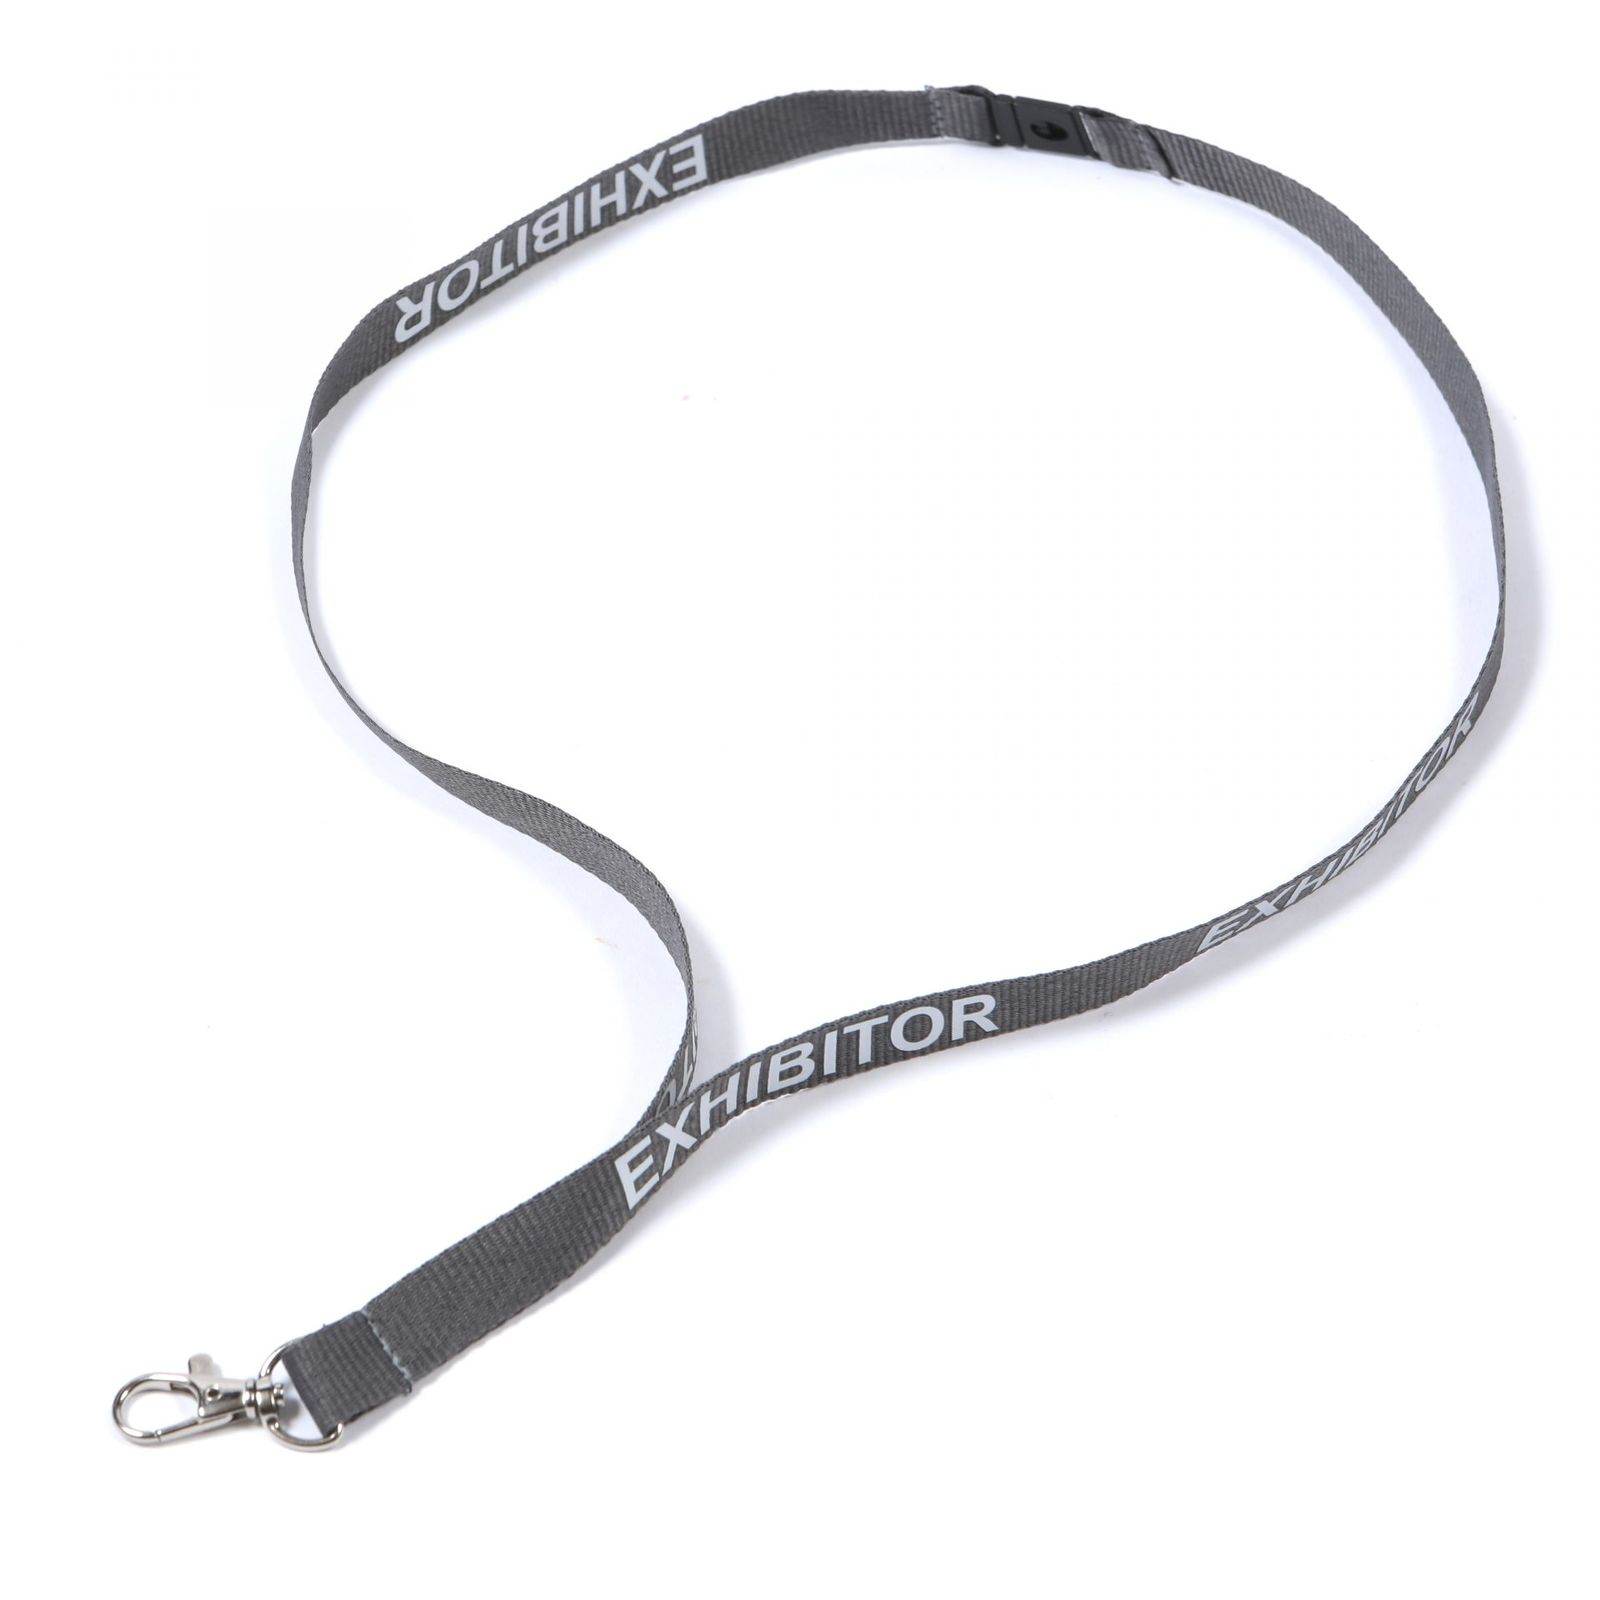 Buy Grey Exhibitor on Lanyards Direct Today!